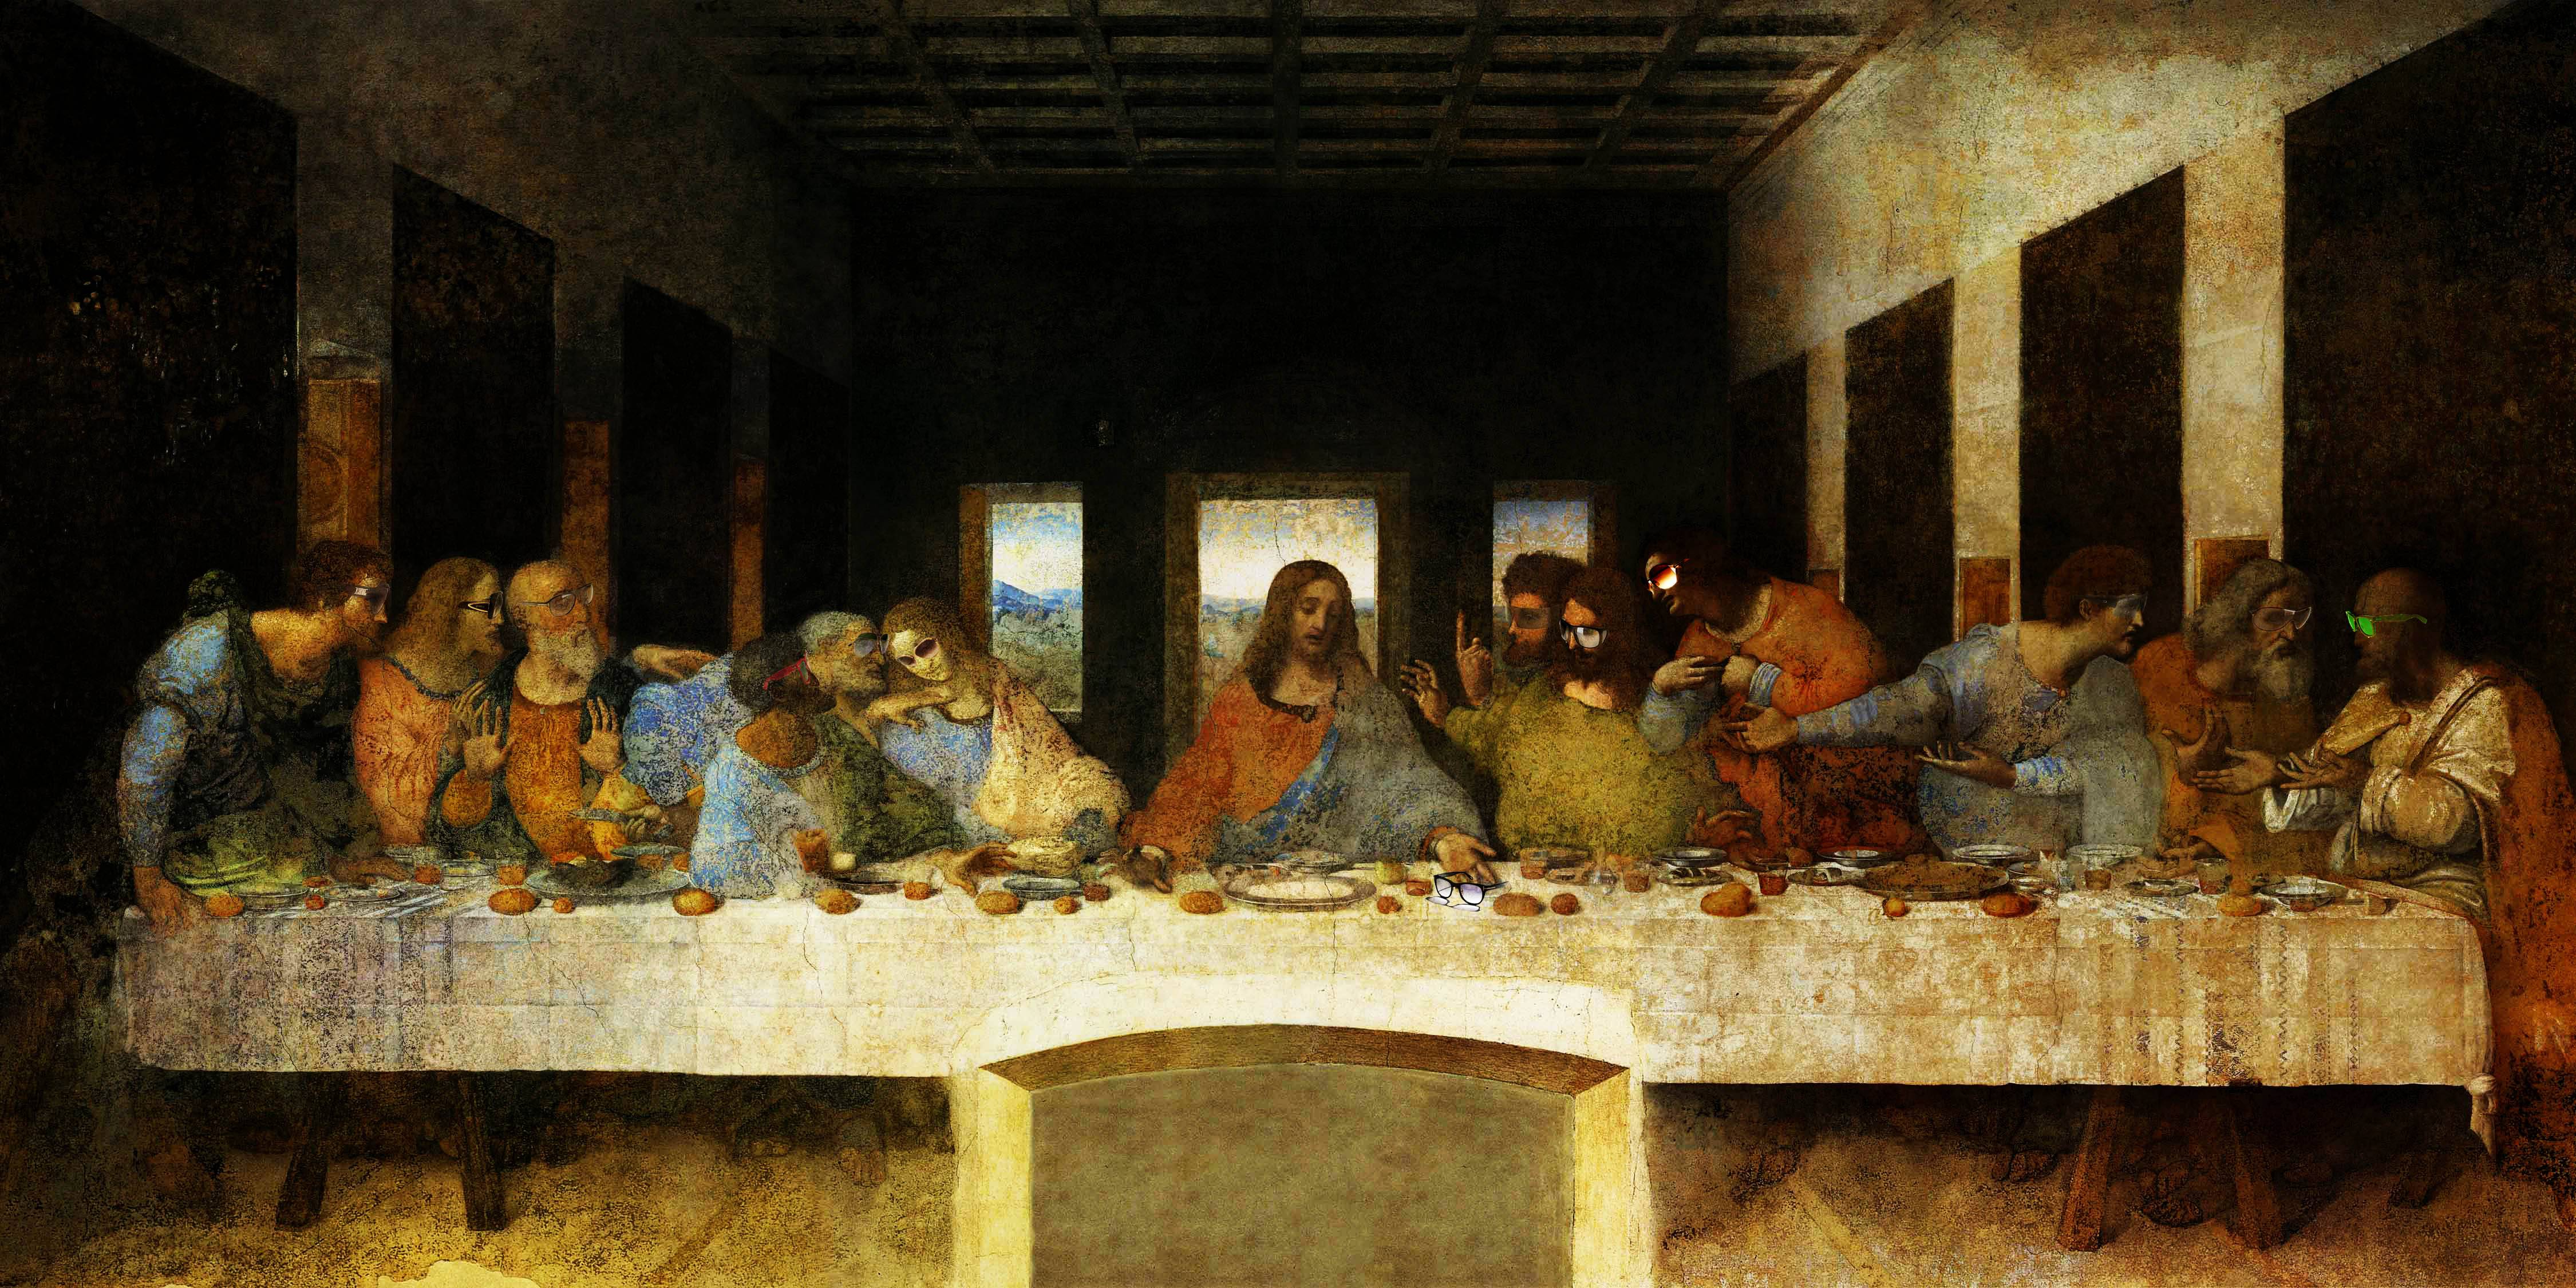 Why Is The Painting The Last Supper So Famous